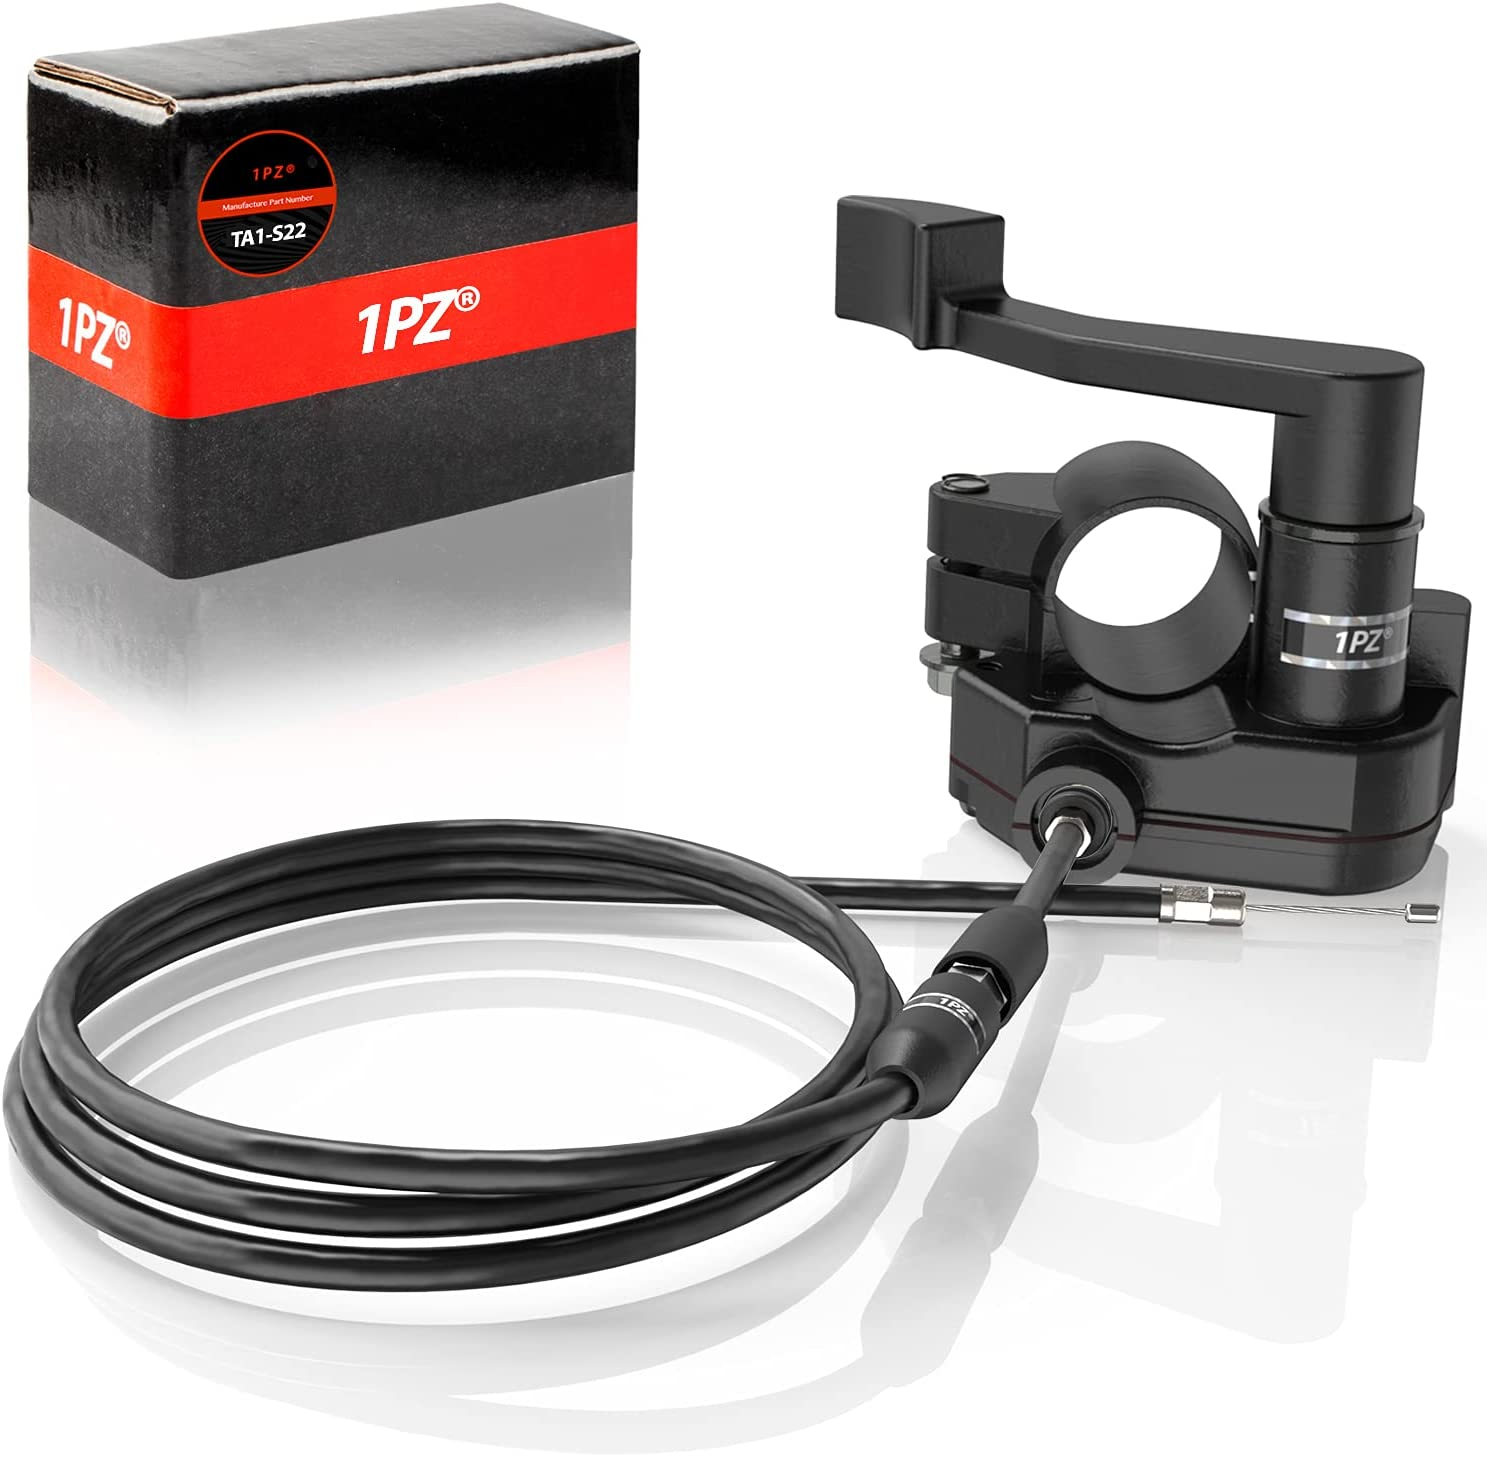 1PZ TA1-S22 Heavy Duty 7 8'' Discount is also underway Throttle Thumb Department store Accelerat 22mm Cable